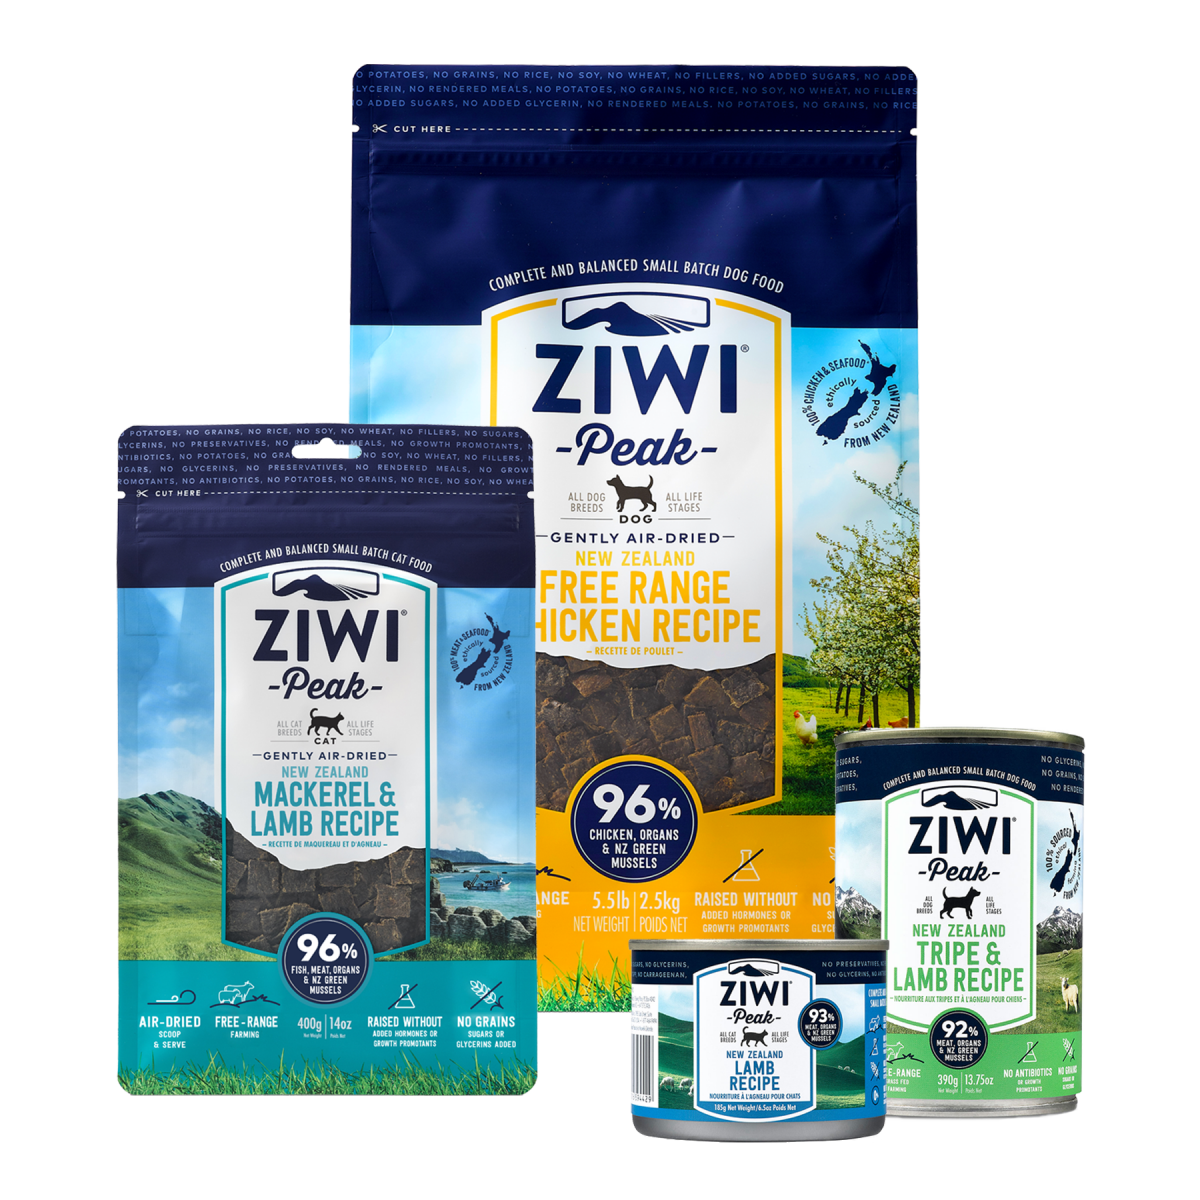 How Ziwi Thrives Off its New Zealand Heritage